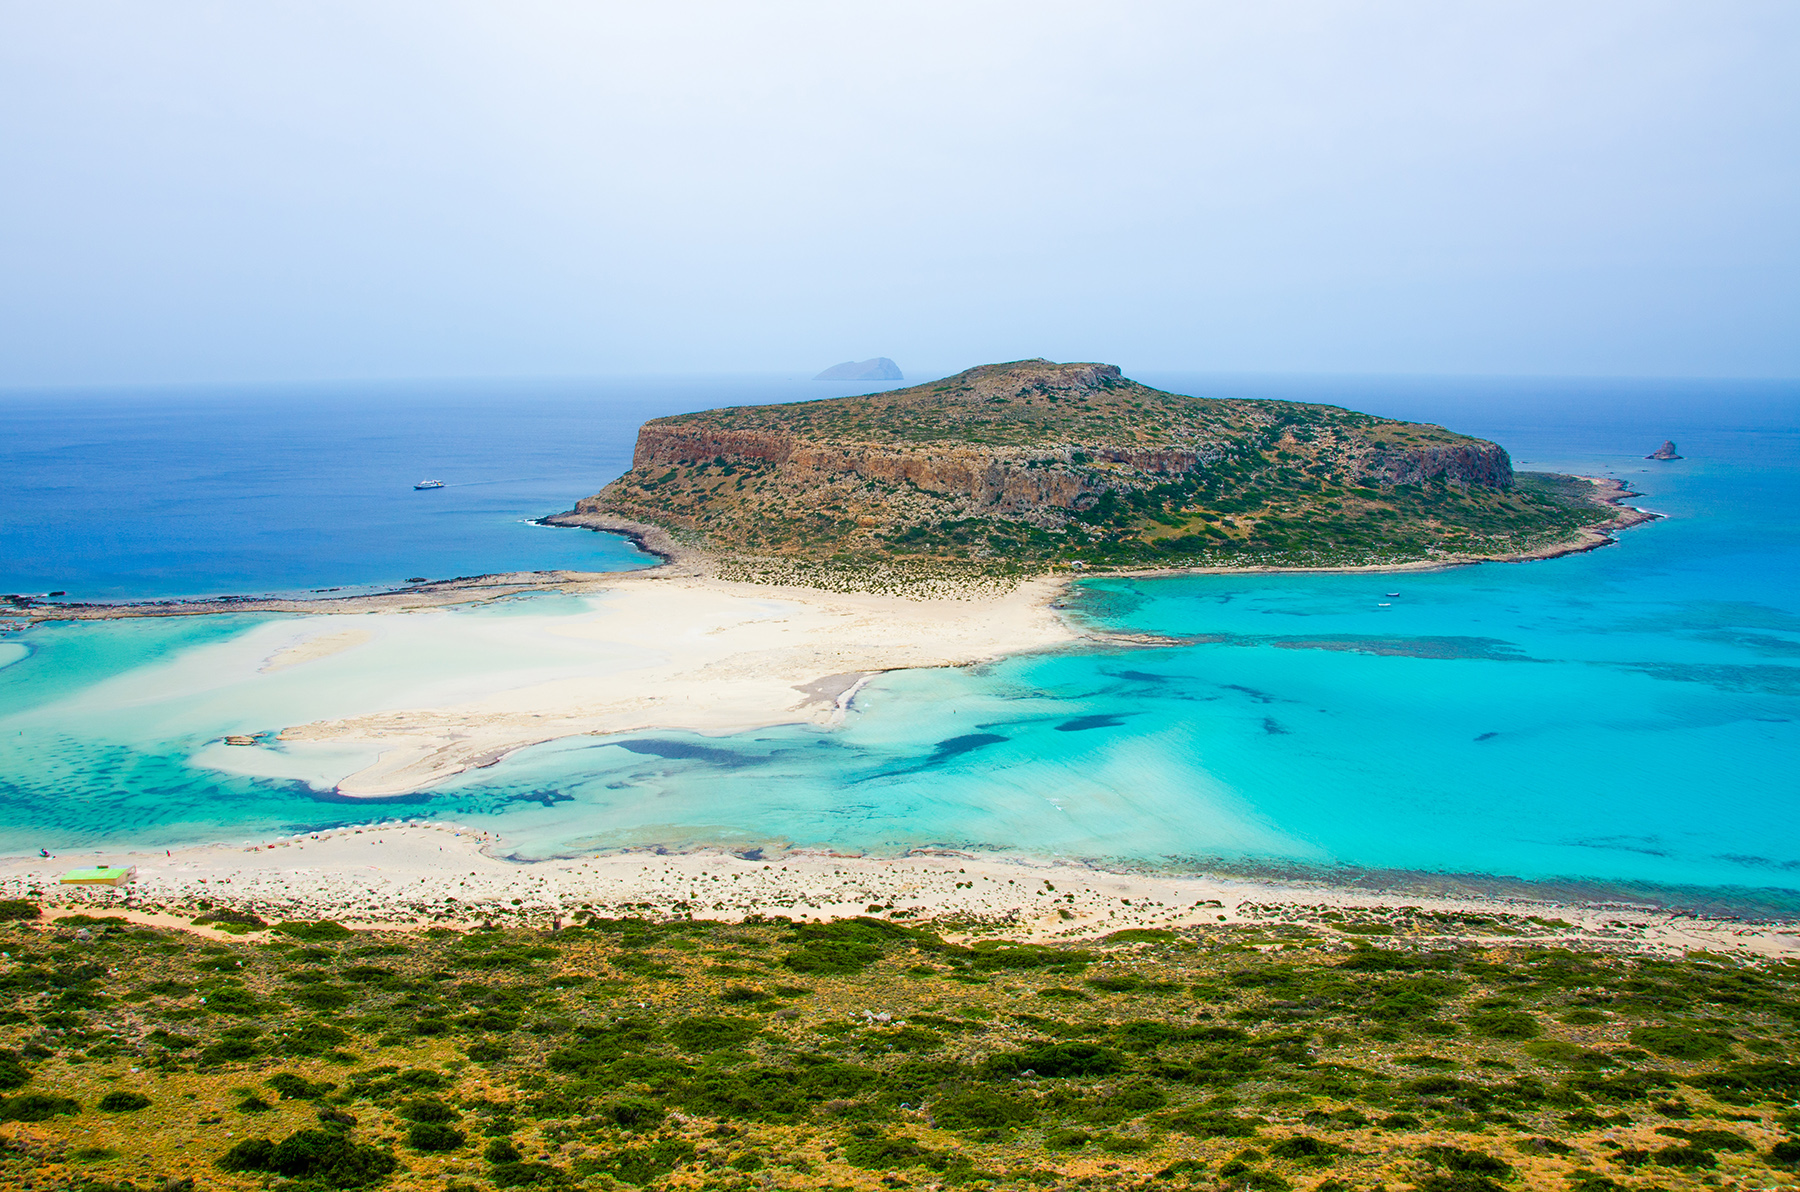 5 beaches in Crete you must visit